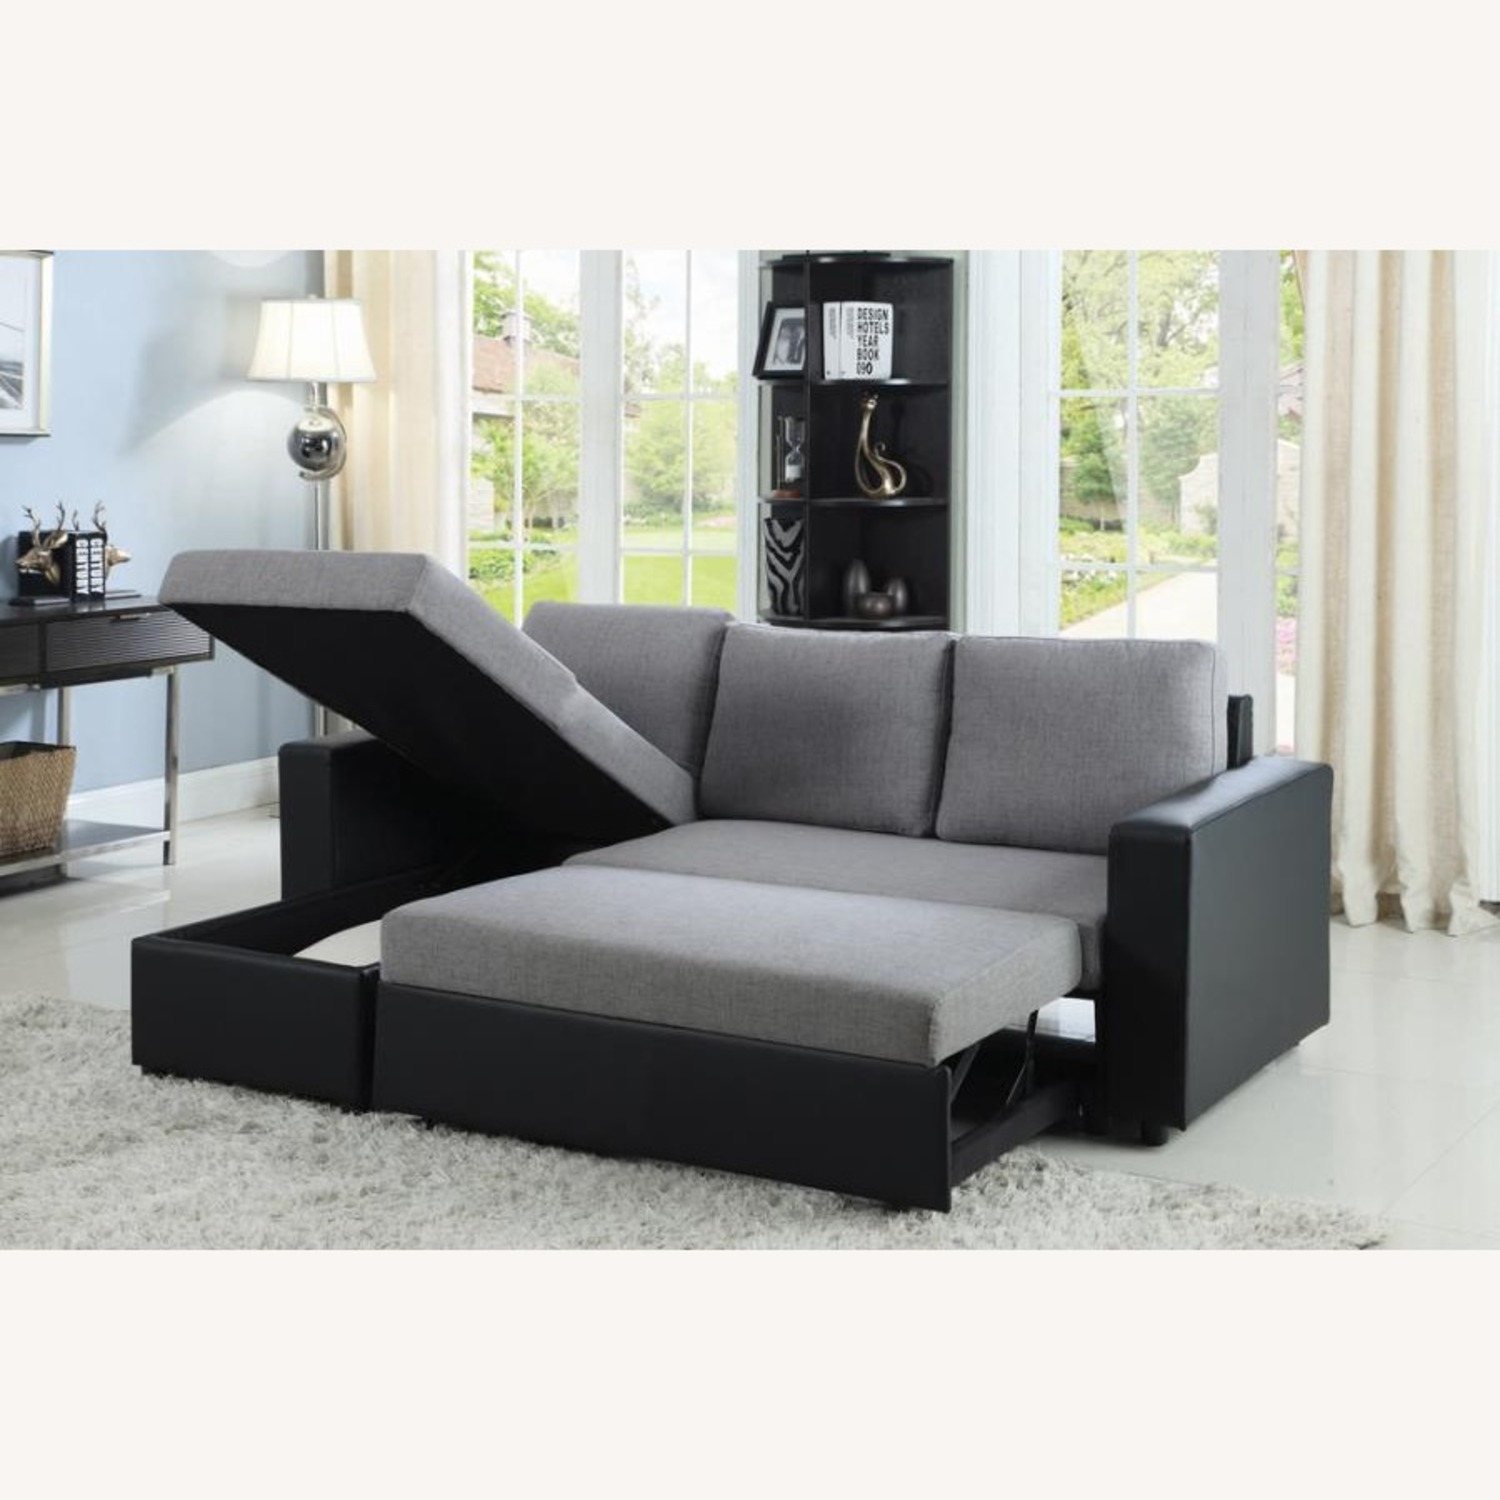 2-Piece Sectional In Grey Linen-Like Fabric - image-3